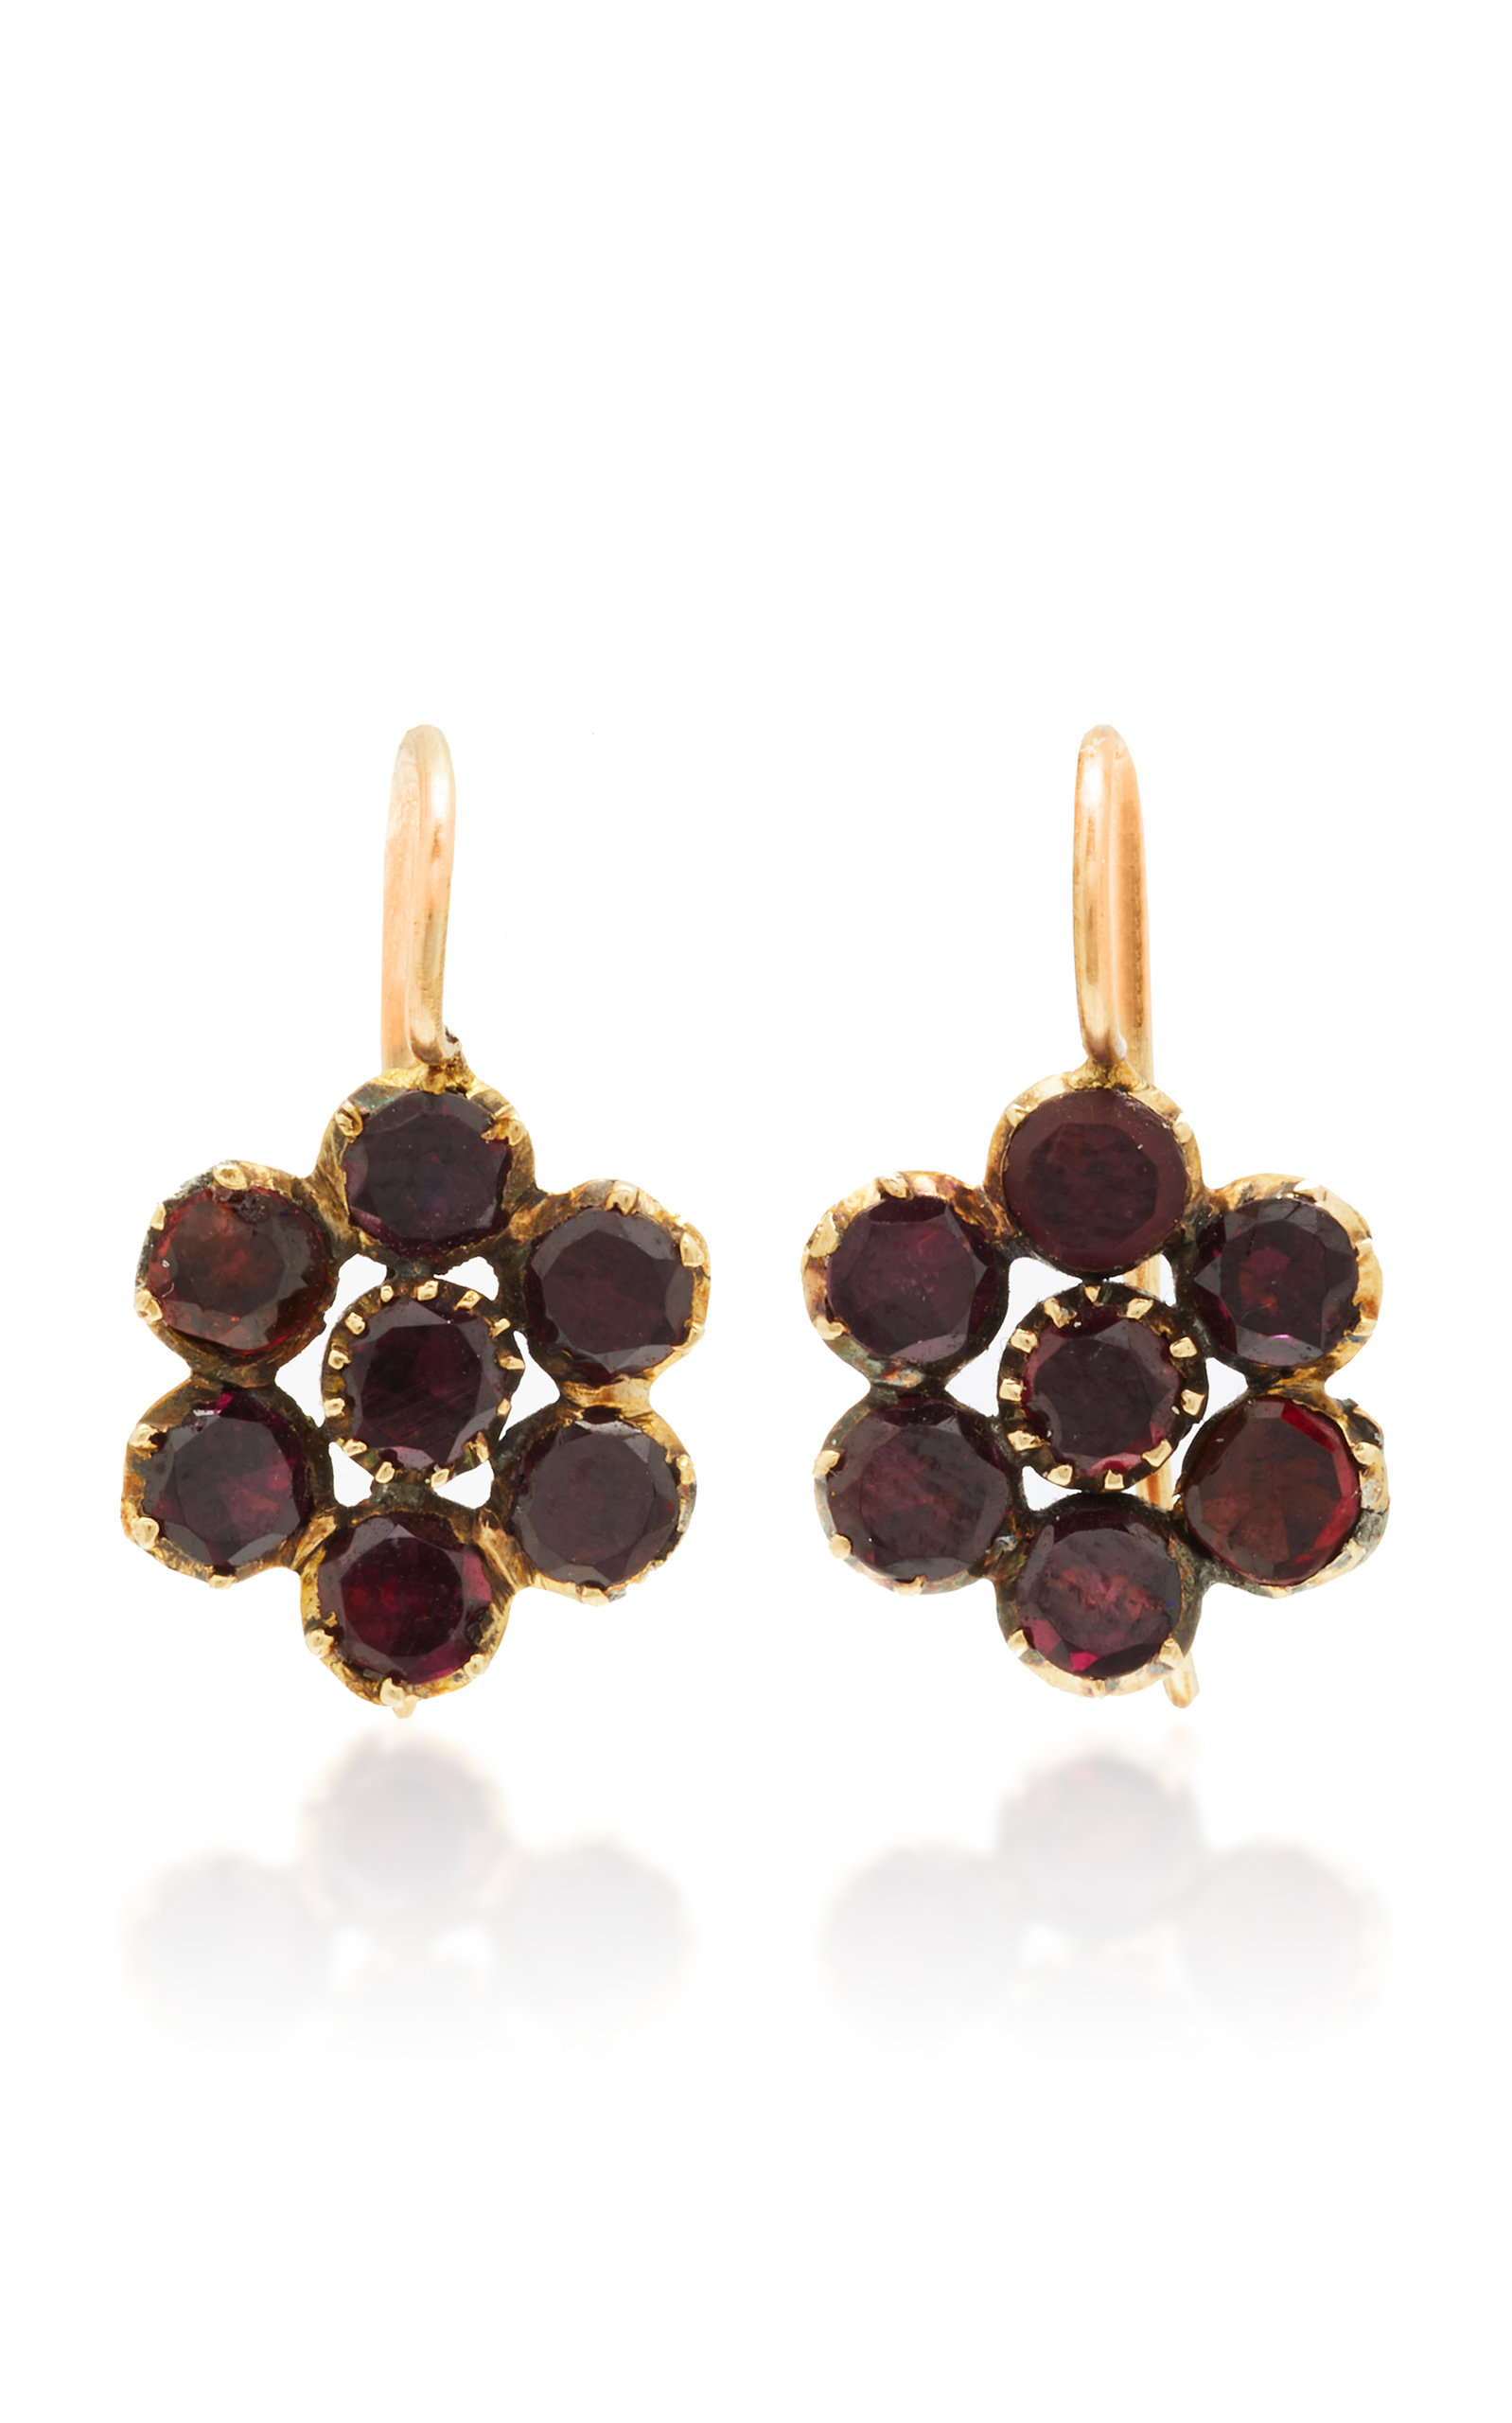 VELA ONE-OF-A-KIND GEORGIAN GARNET PANSY EARRINGS